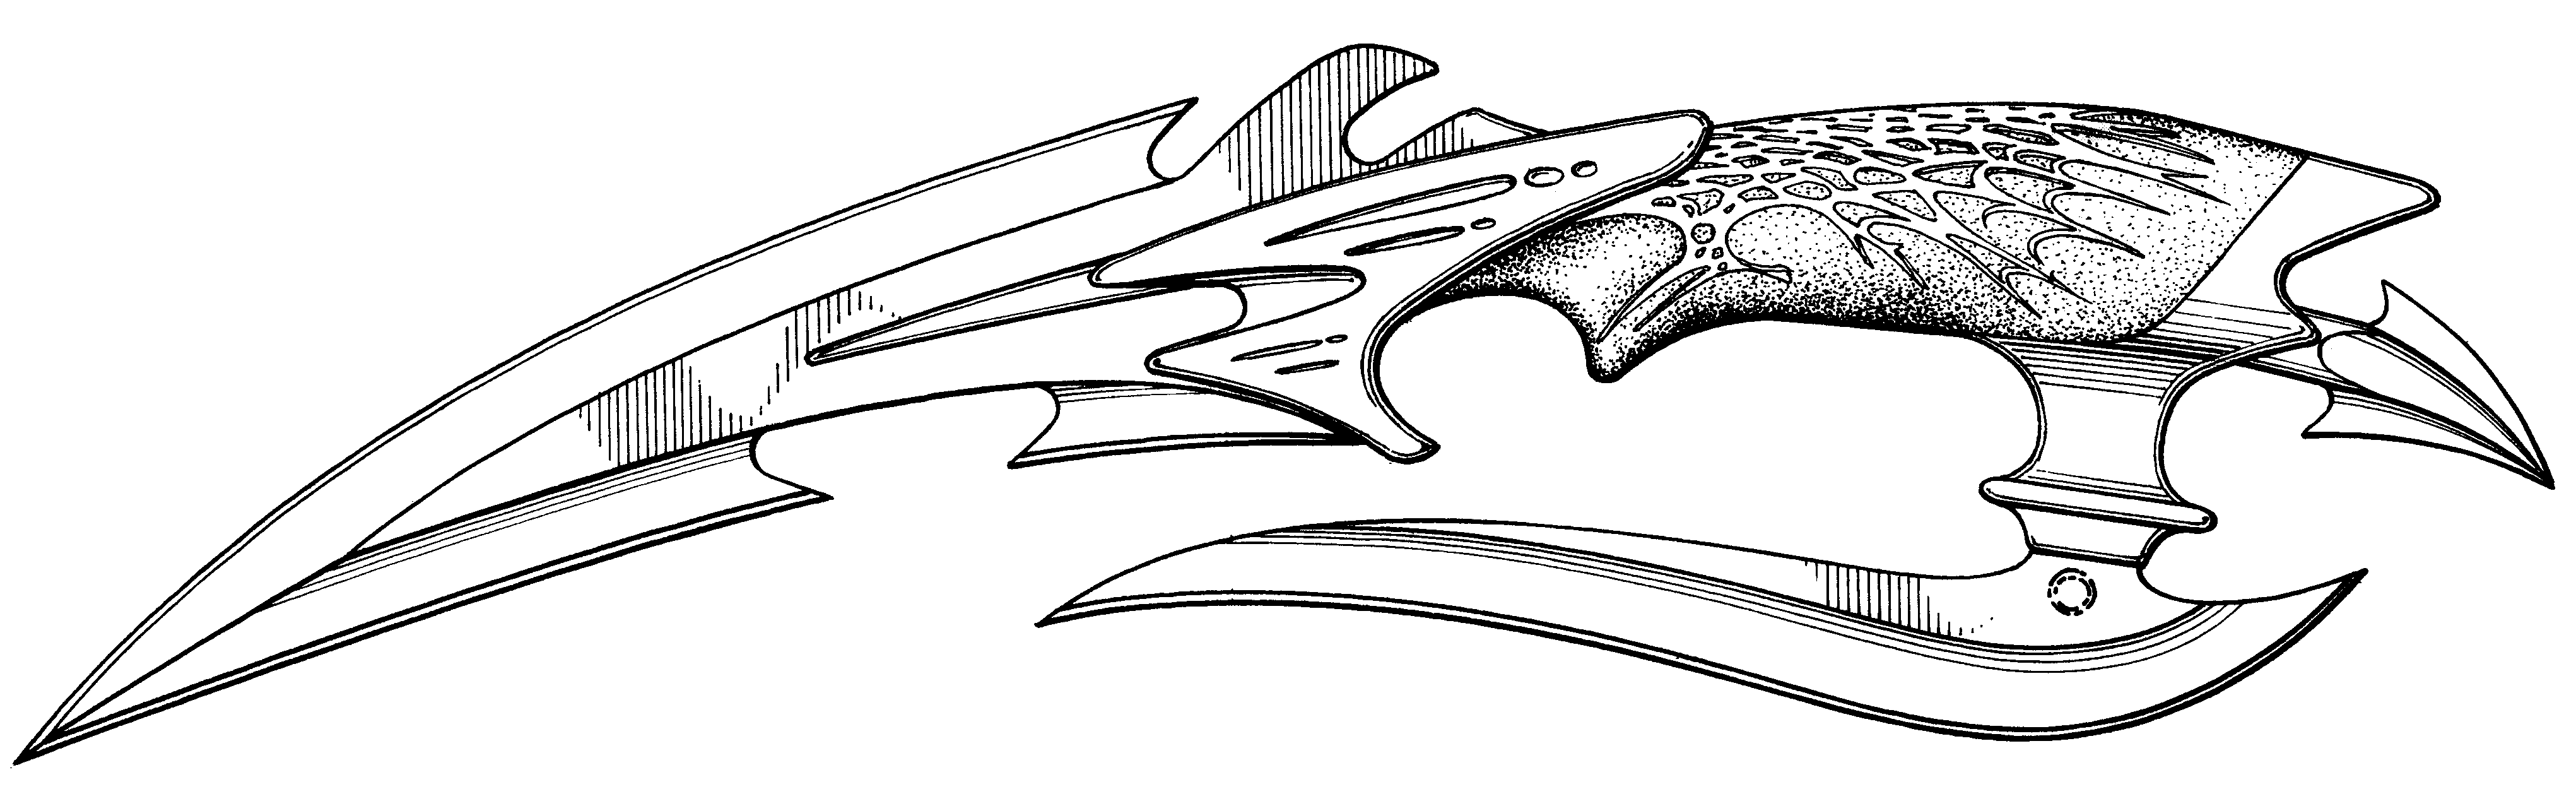 army knife coloring pages - photo#34